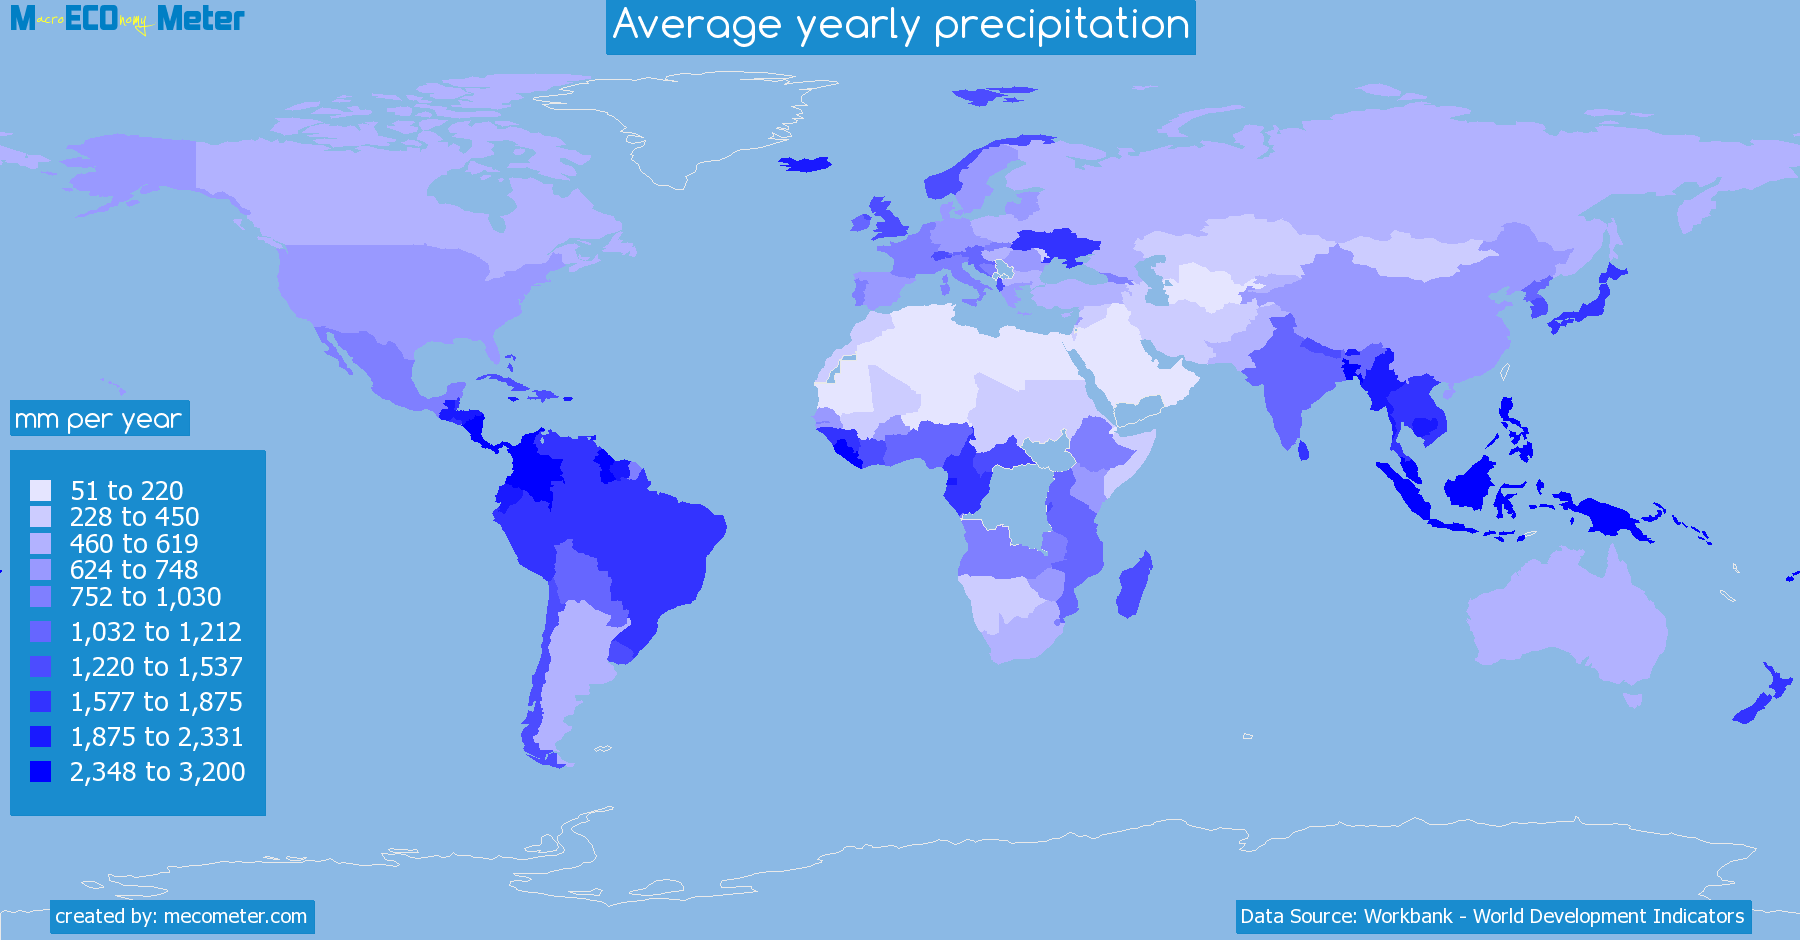 Worldmap of all countries colored to reflect the values of Average yearly precipitation